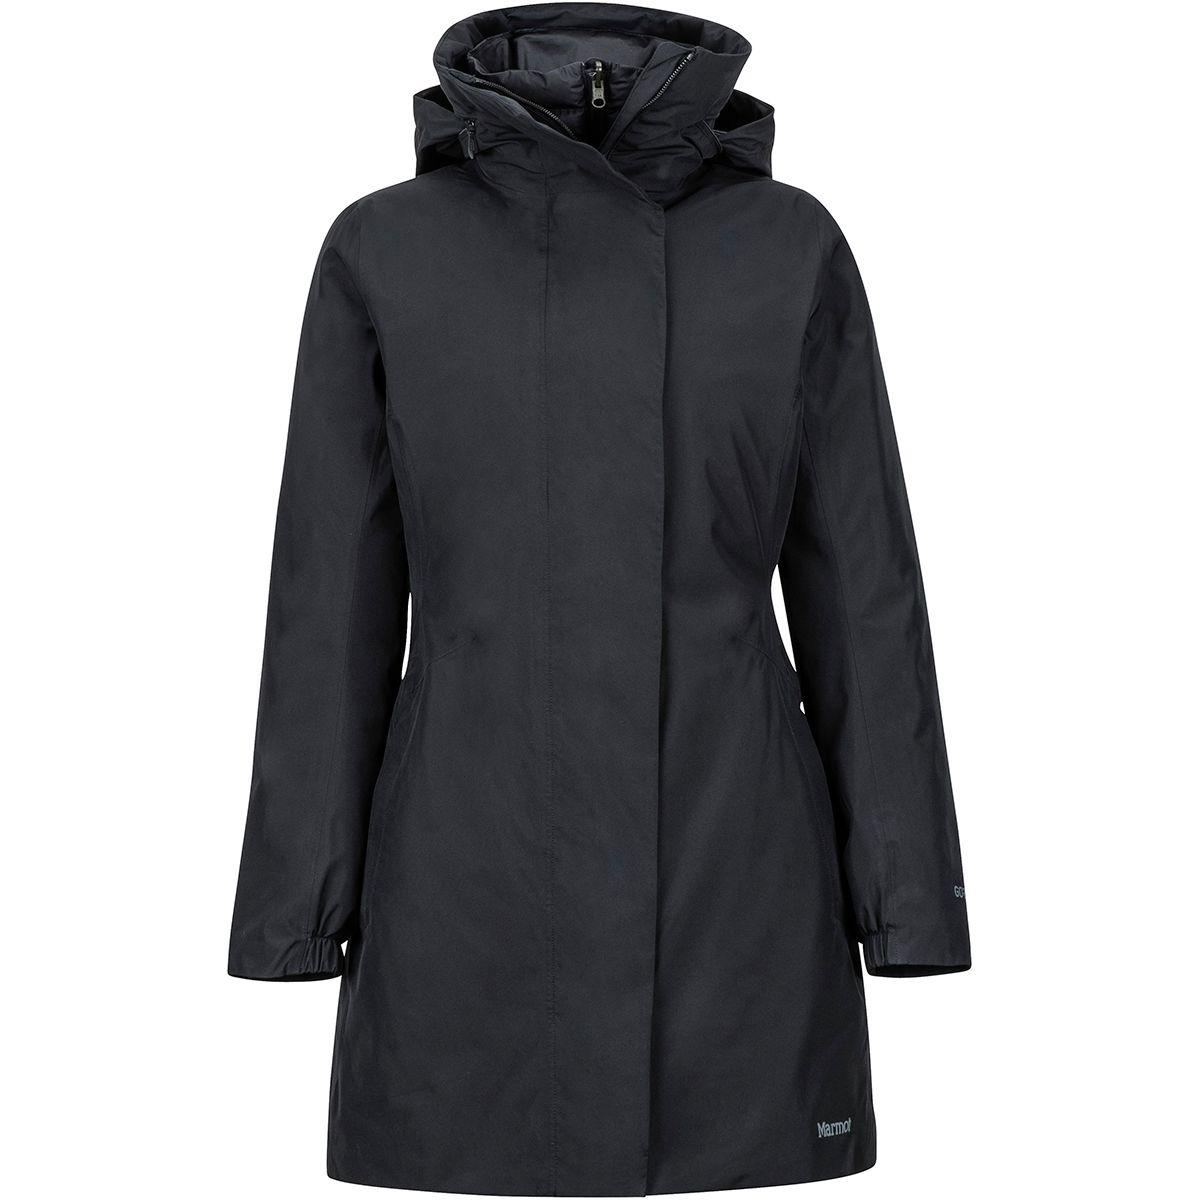 a28f59c4fe9 Lyst - Marmot West Side Comp Jacket in Black - Save 50%